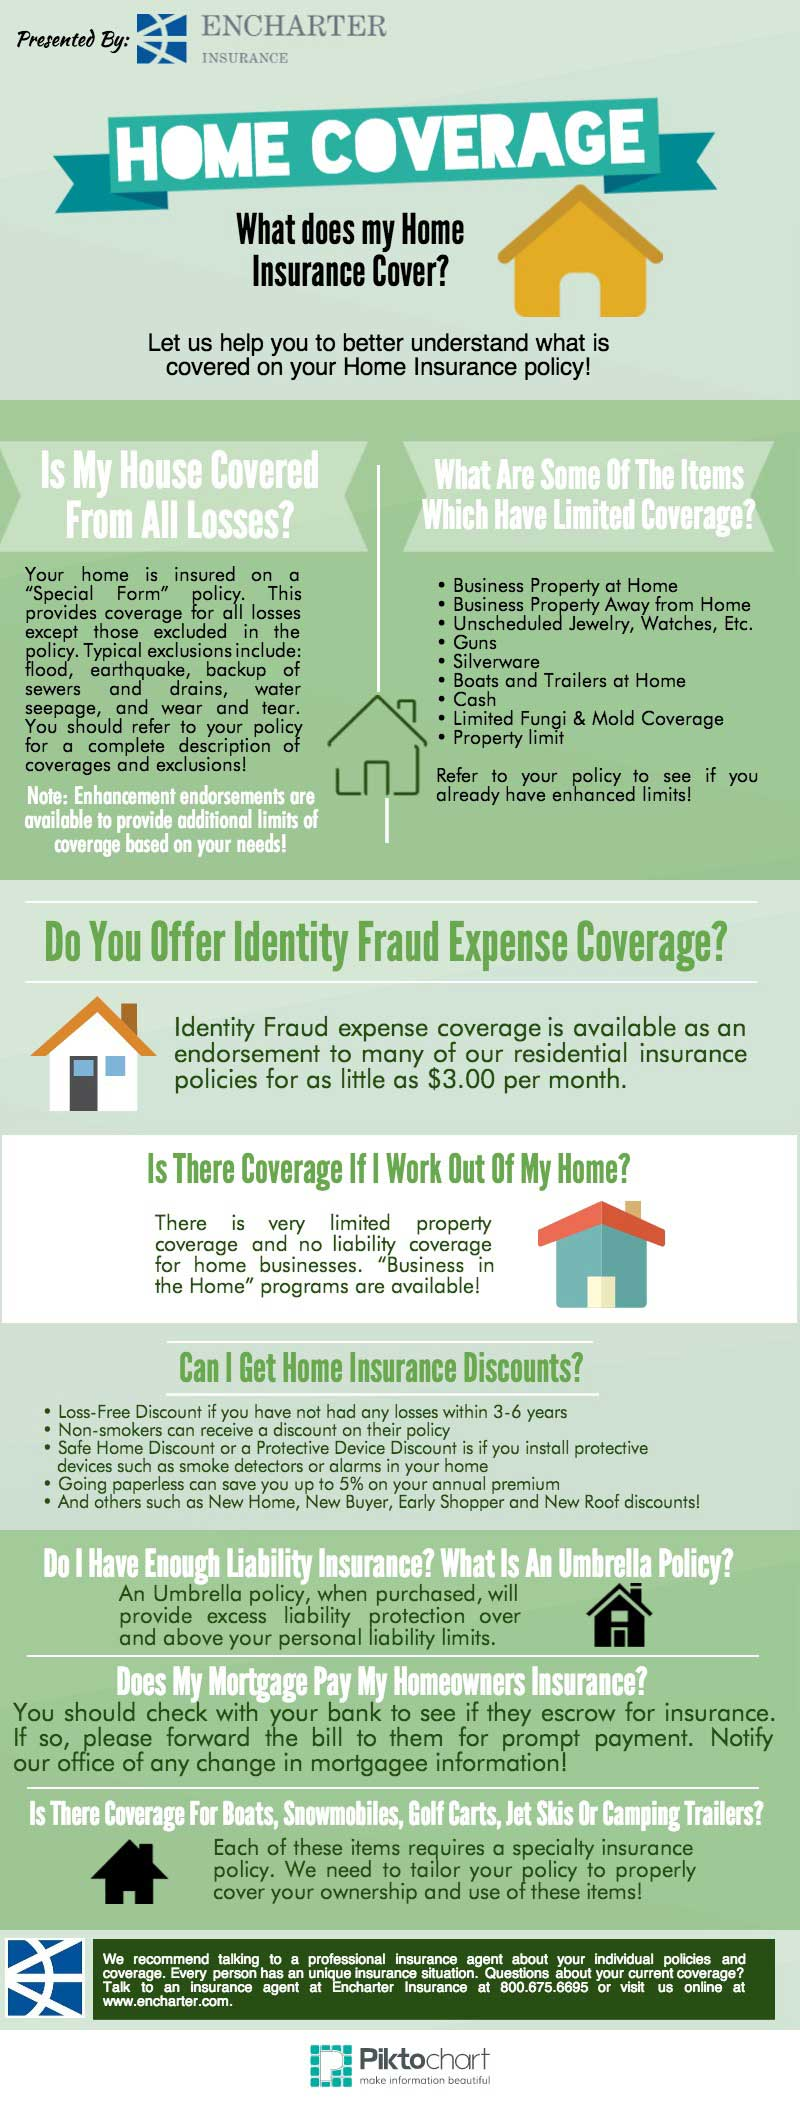 common home insurance coverage questions answered